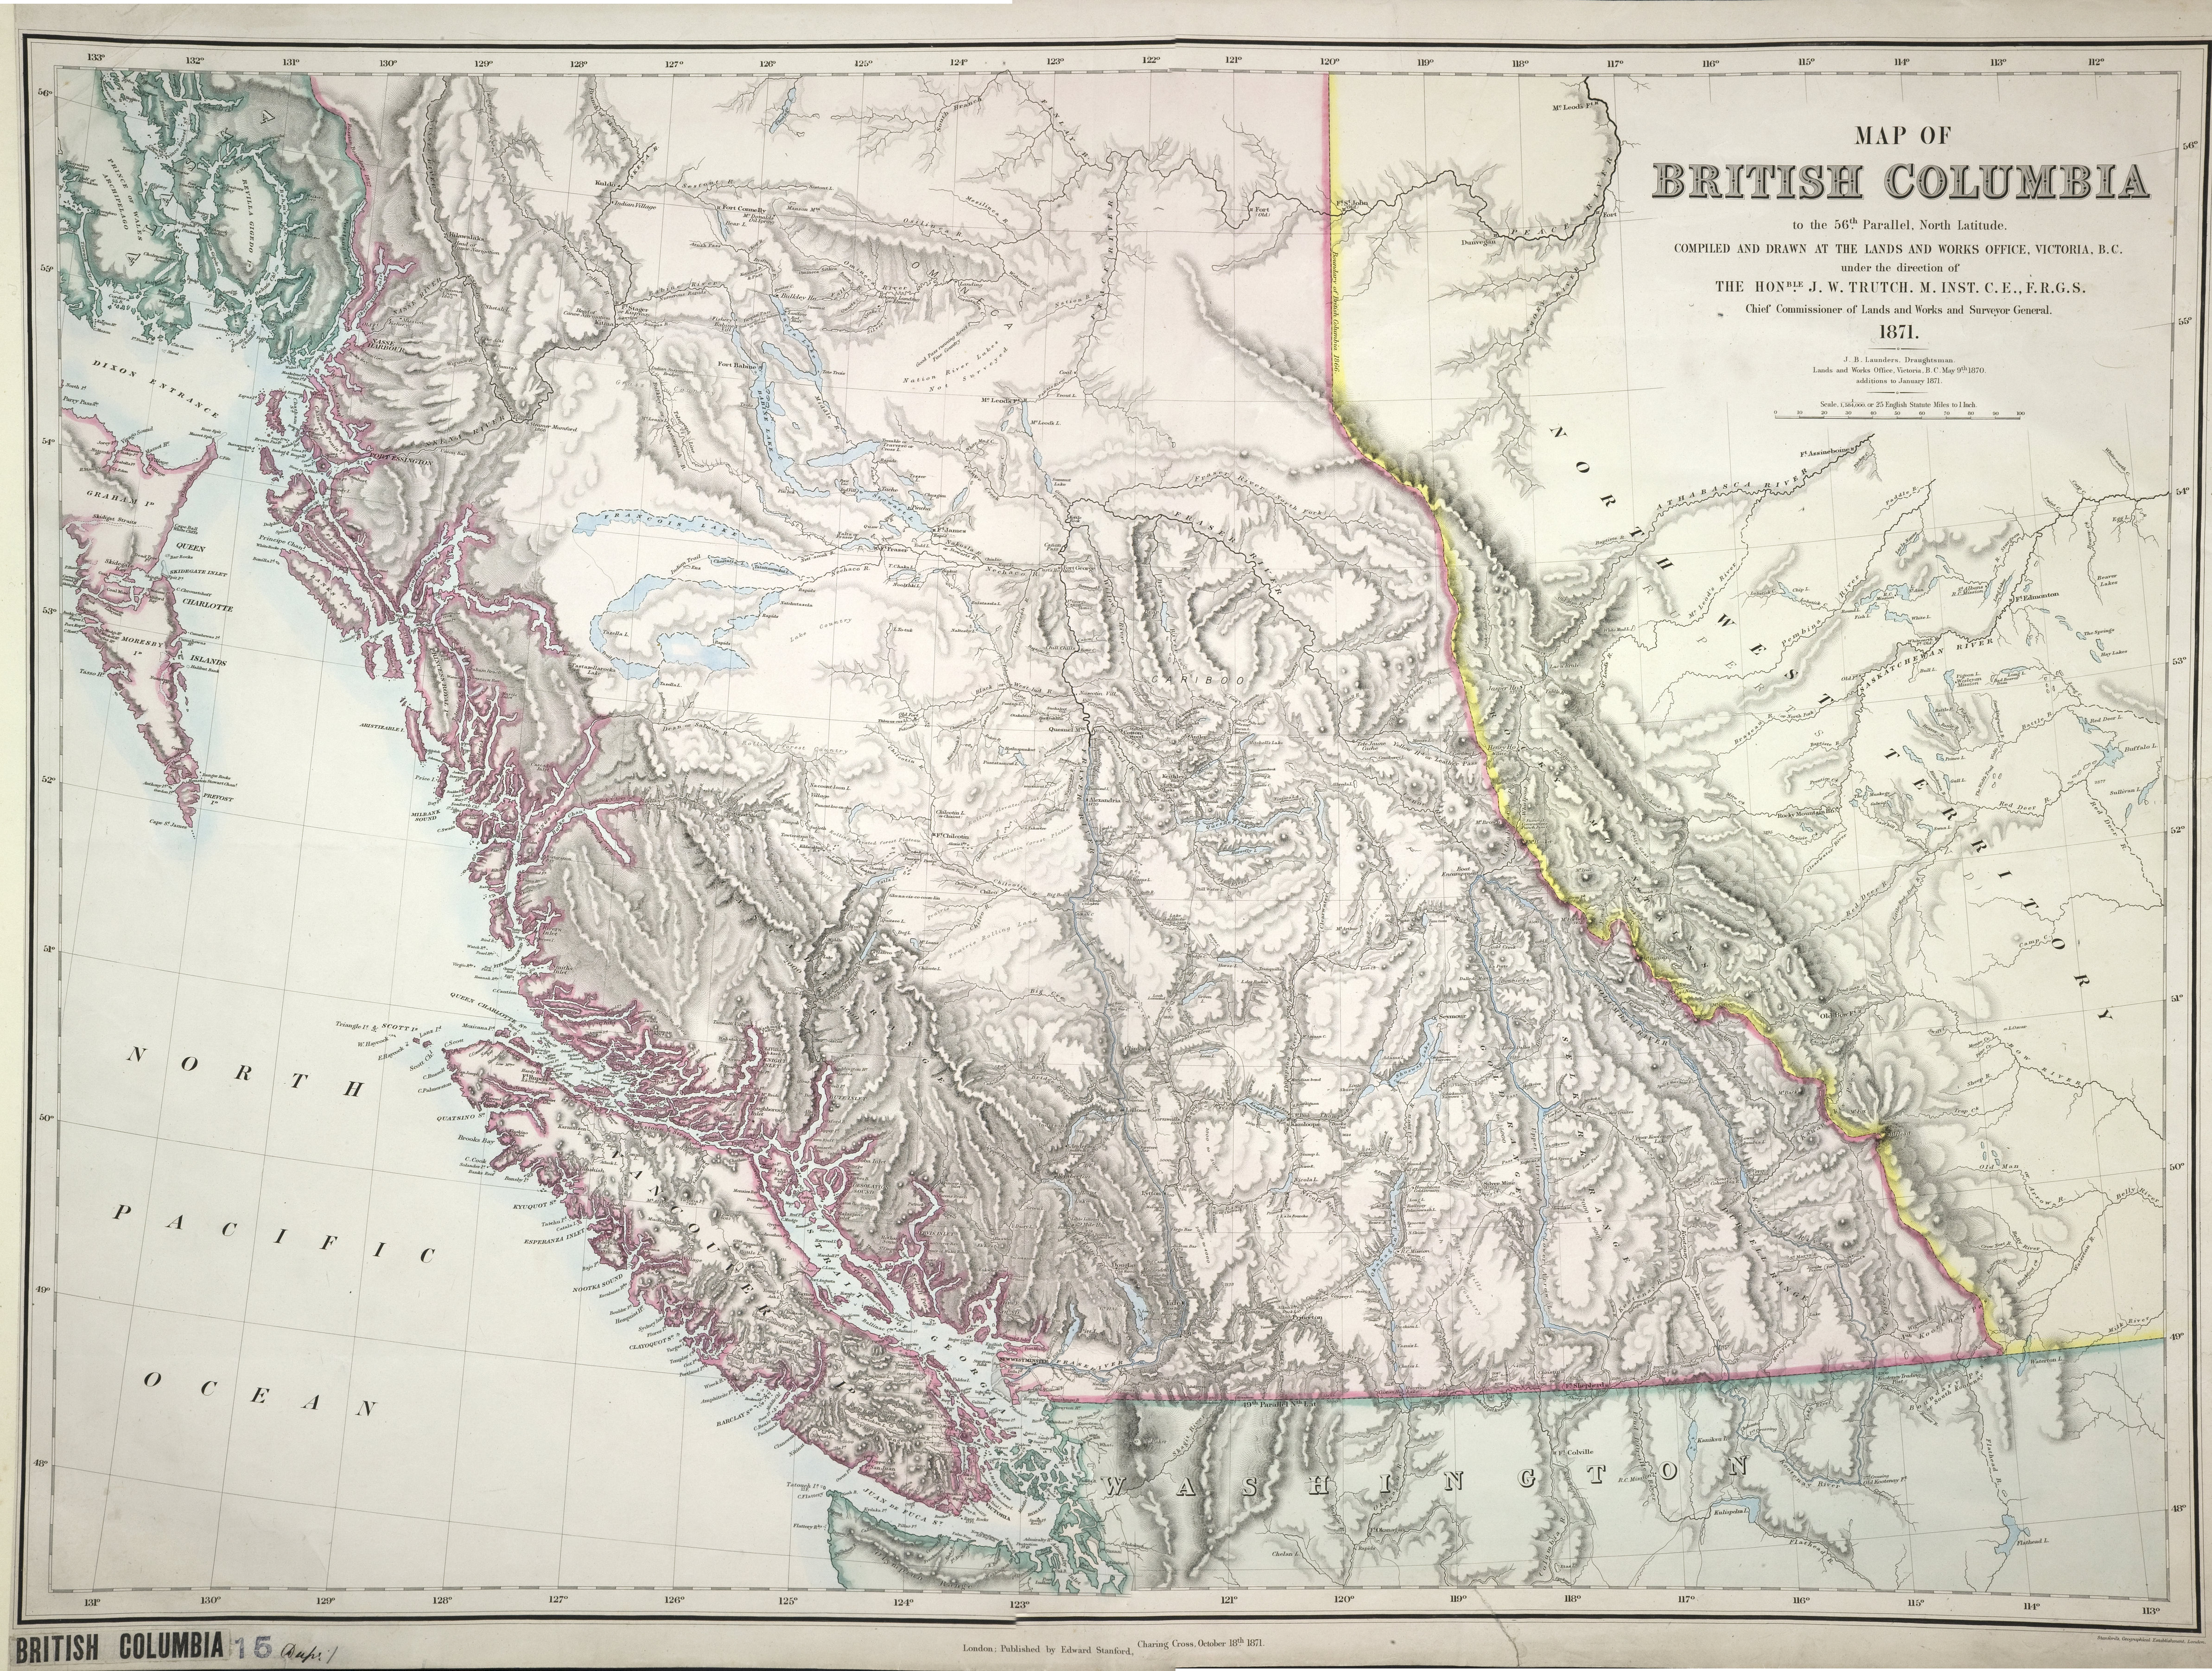 Map of British Columbia to the 56th Parallel North Latitude.